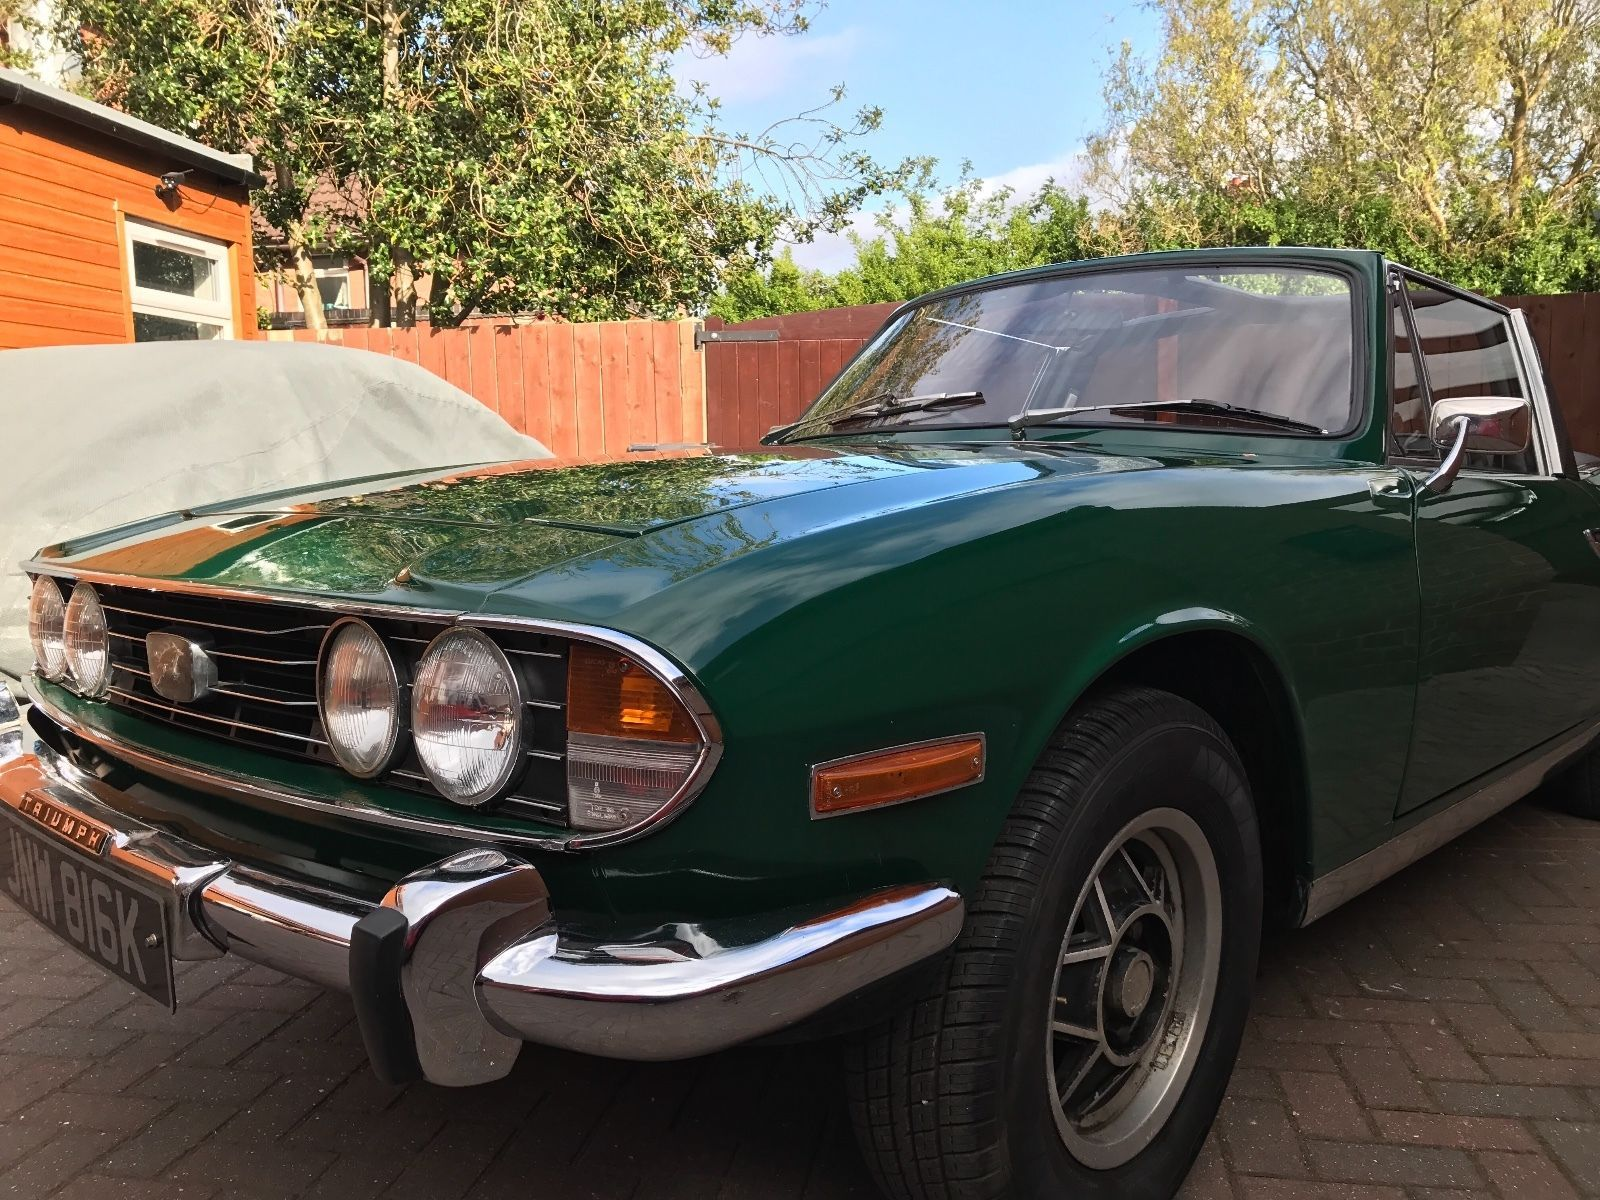 Ebay Triumph Stag Lovely Refurbed Classic Ready To Show